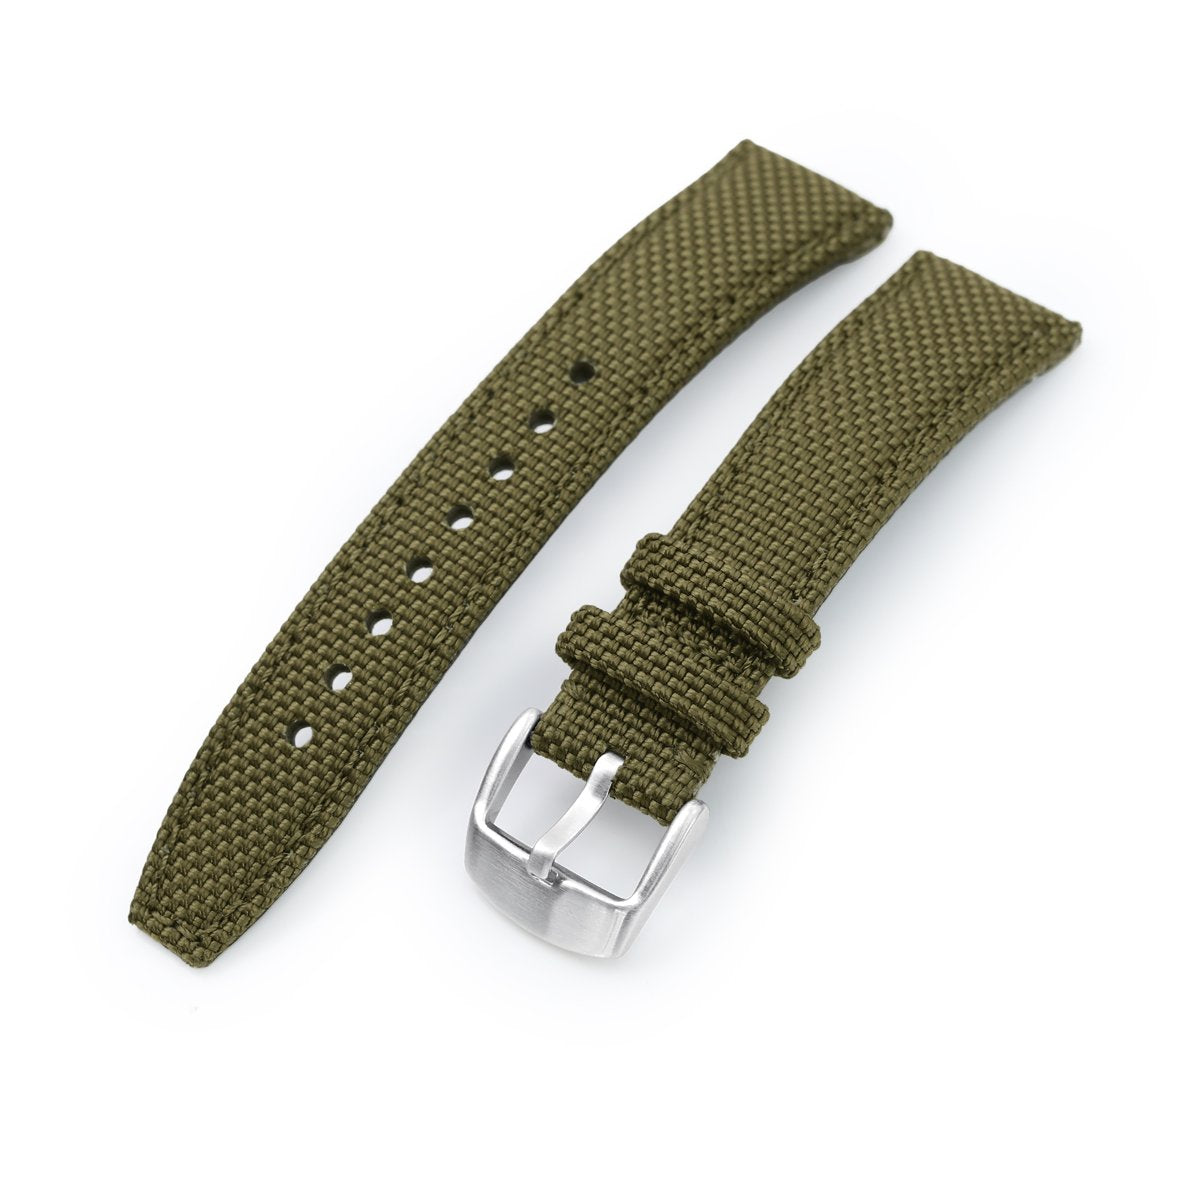 20mm 21mm or 22mm Strong Texture Woven Nylon Military Green Watch Strap Brushed Strapcode Watch Bands